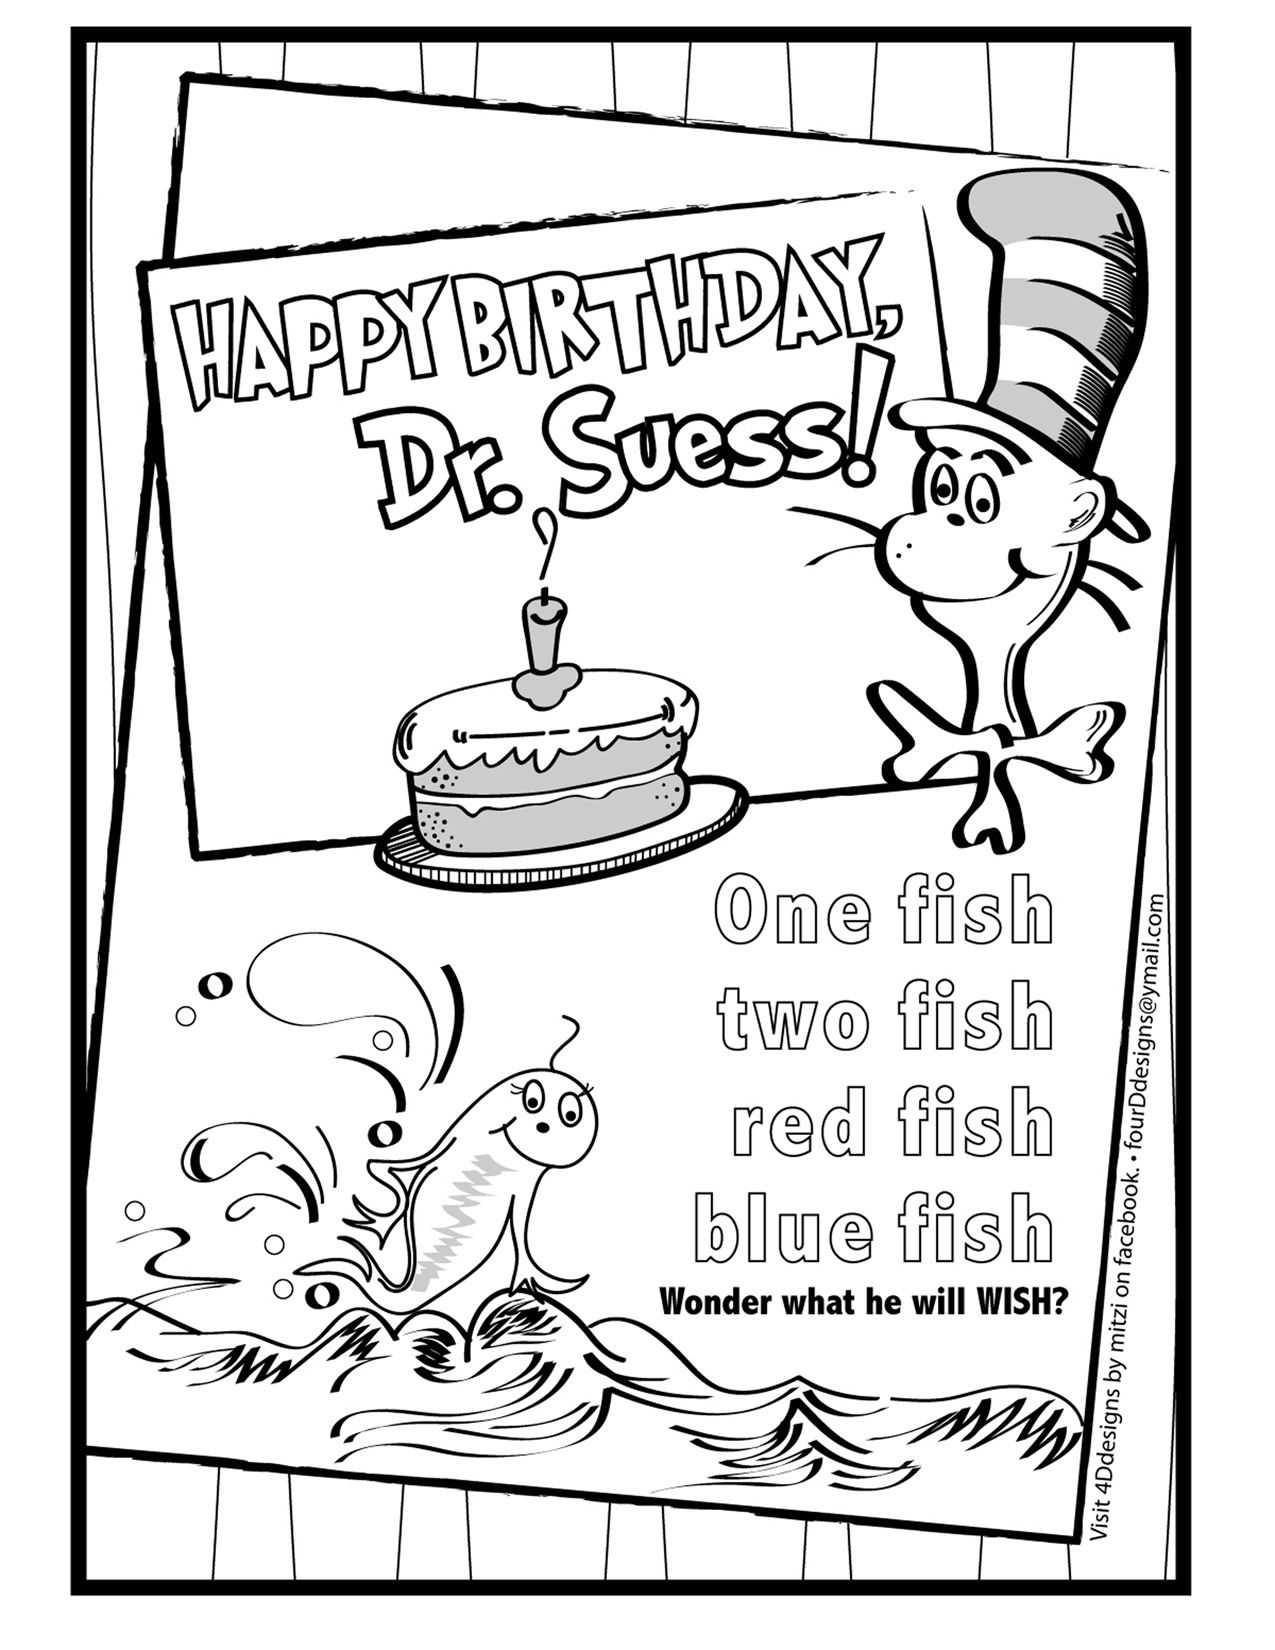 Happy Birthday Dr. Suess! Coloring Page • FREE download | Preschool ...